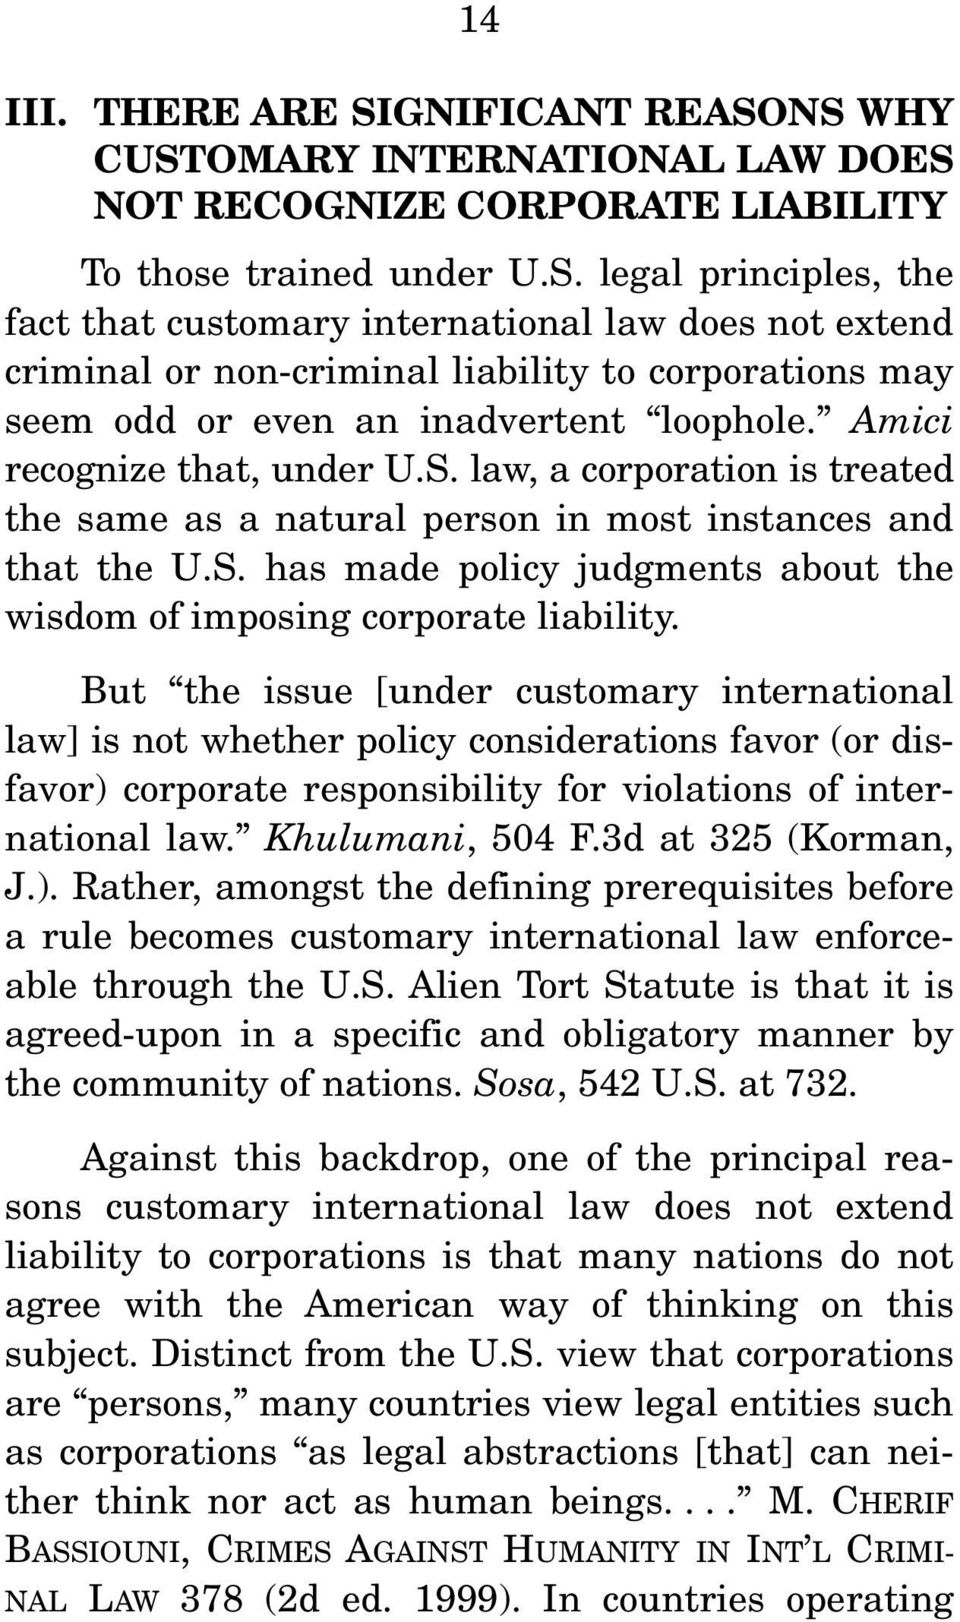 But the issue [under customary international law] is not whether policy considerations favor (or disfavor) corporate responsibility for violations of international law. Khulumani, 504 F.